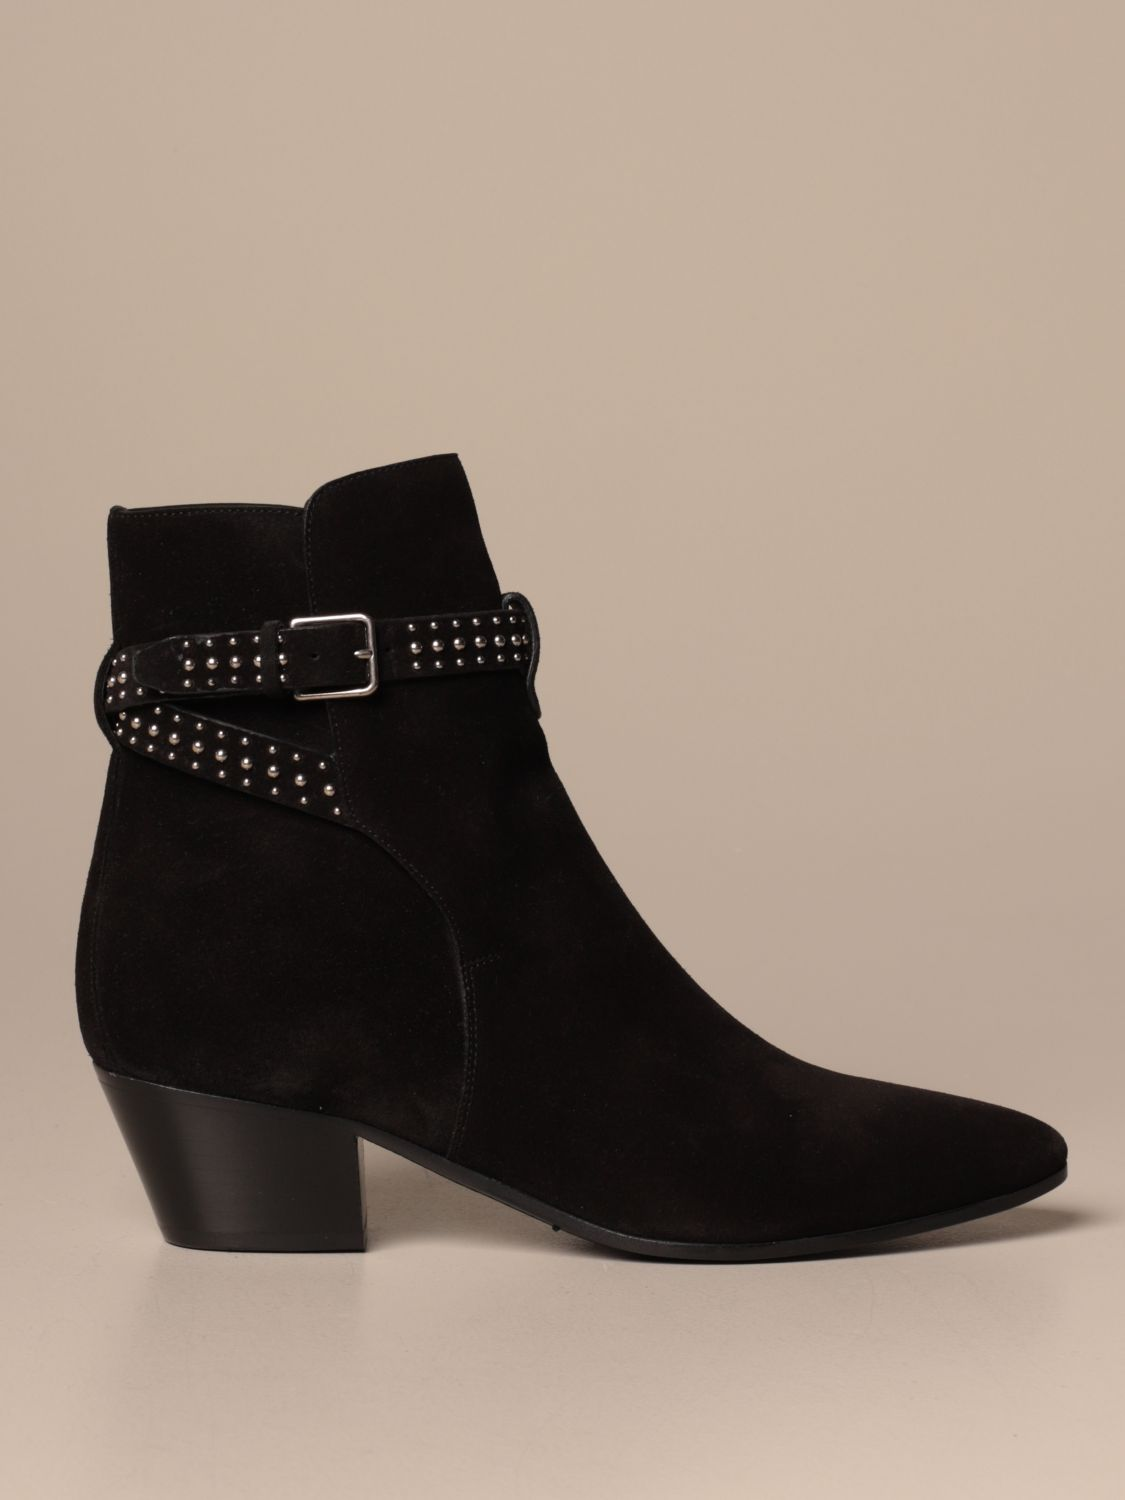 Heeled ankle boots Saint Laurent: Shoes women Saint Laurent black 1